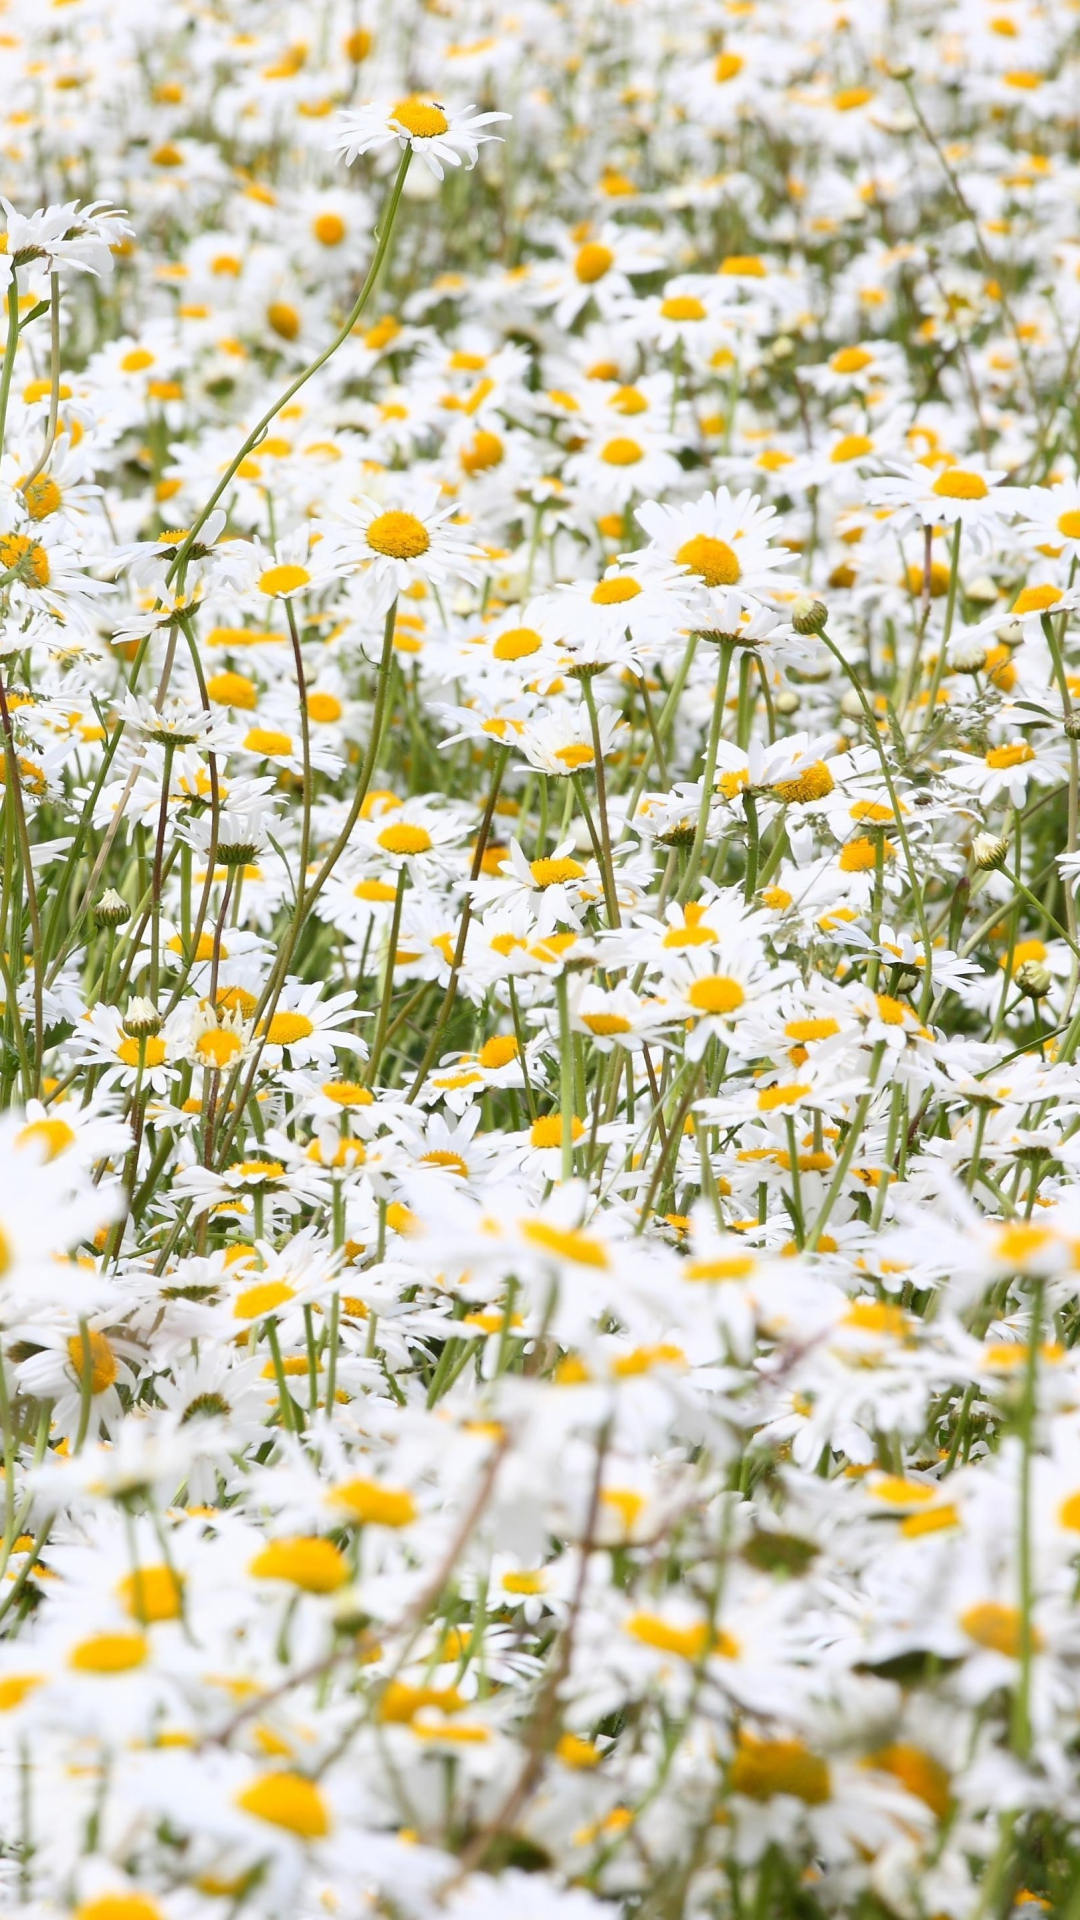 daisies-flowers-field-many-summer-wallpaper-wpc5803902